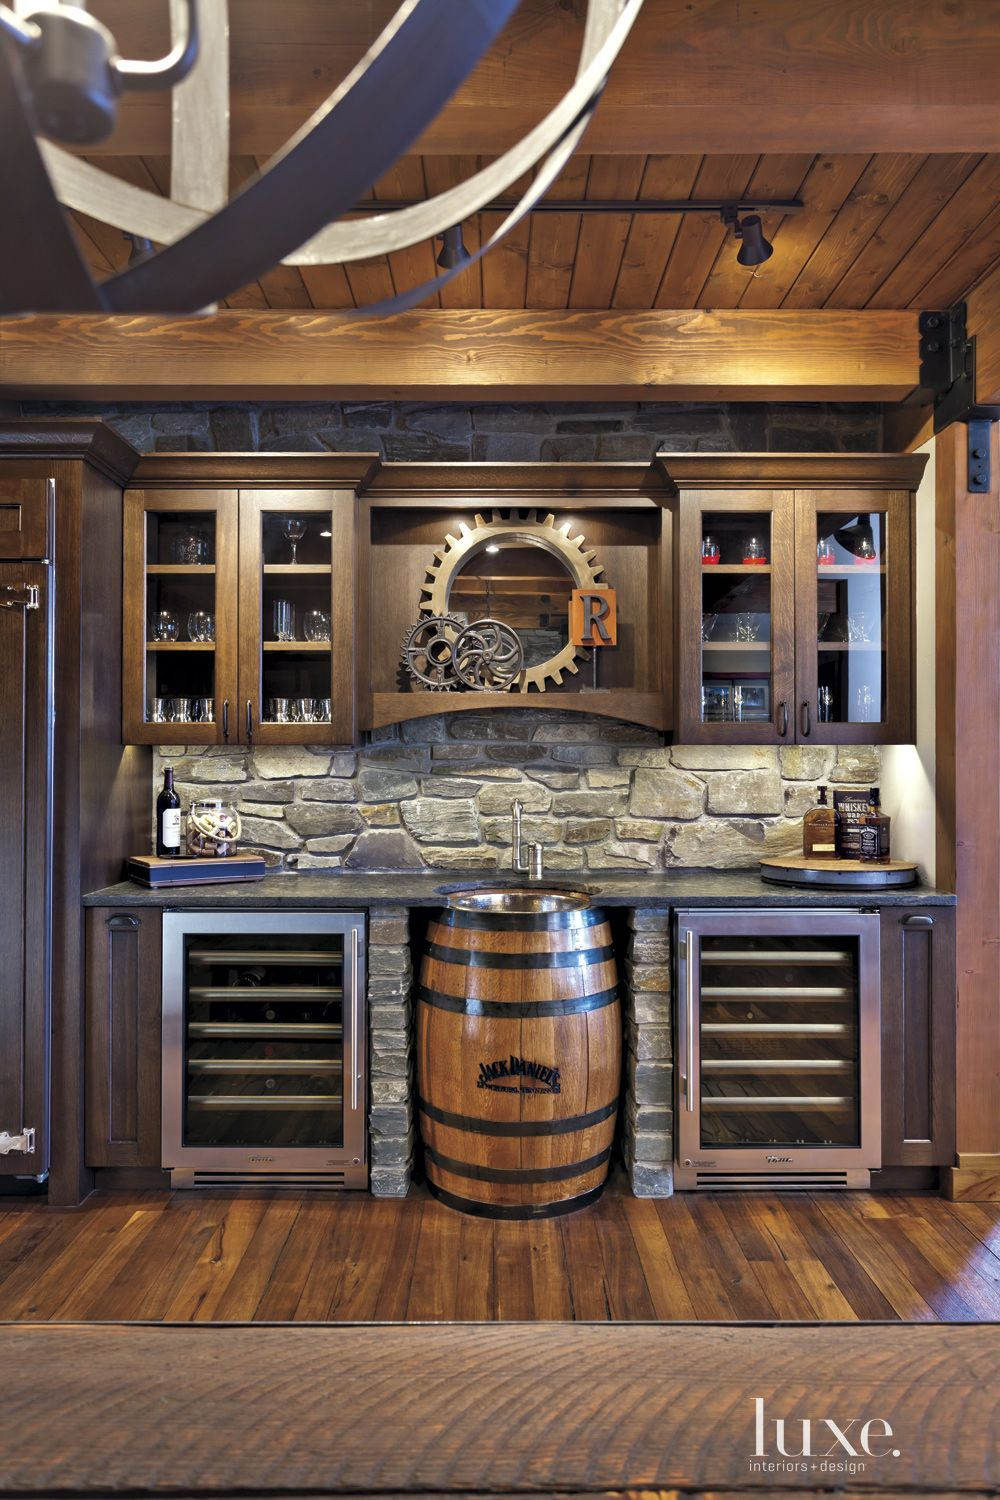 Attractive Neutral Mountain Bar Area With Barrel Sink | LuxeSource | Luxe Magazine    The Luxury Home